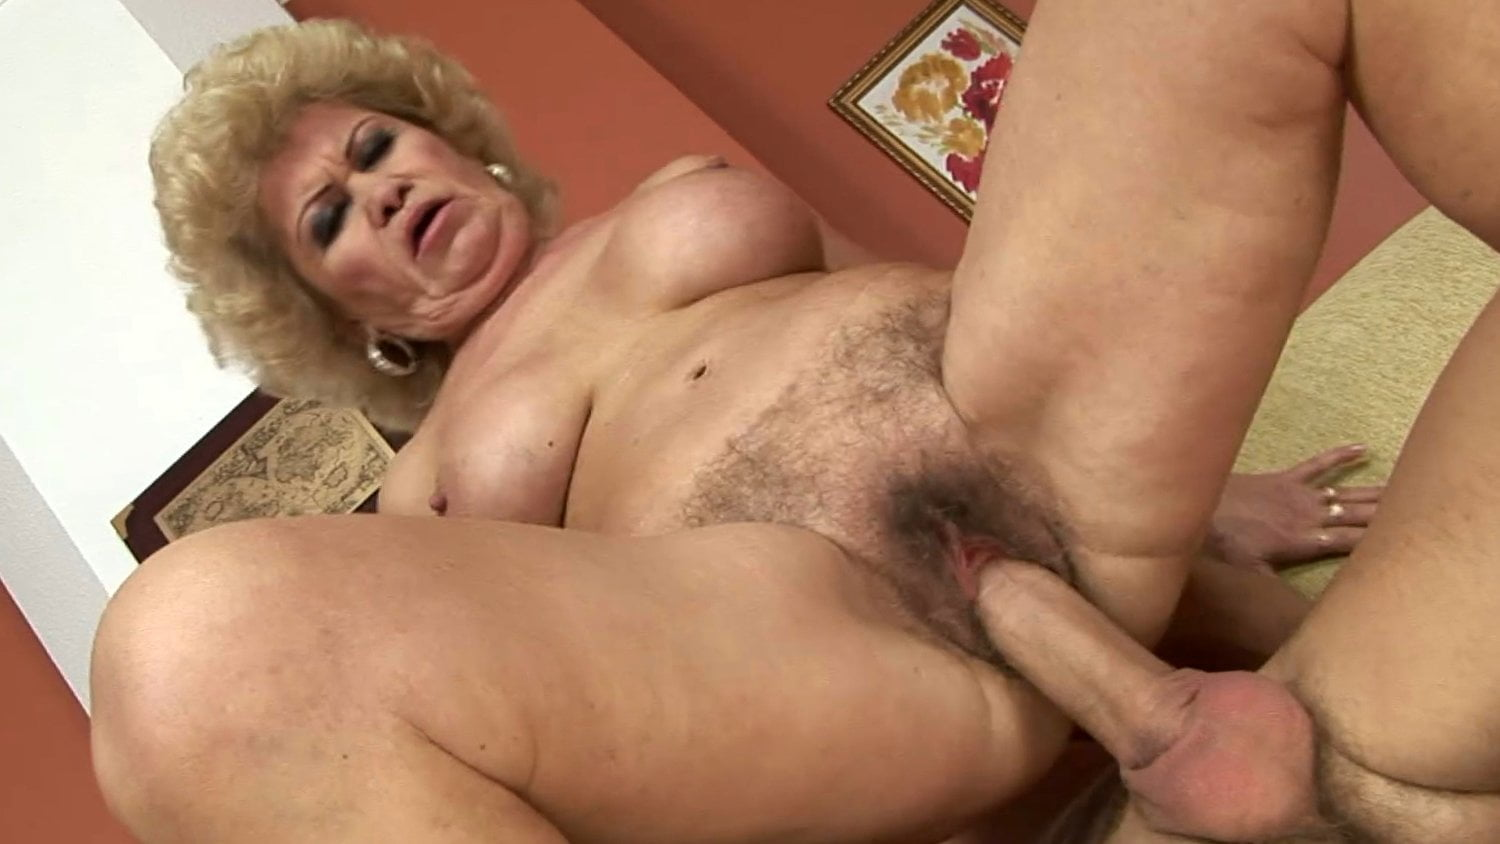 Man lick woman squirt